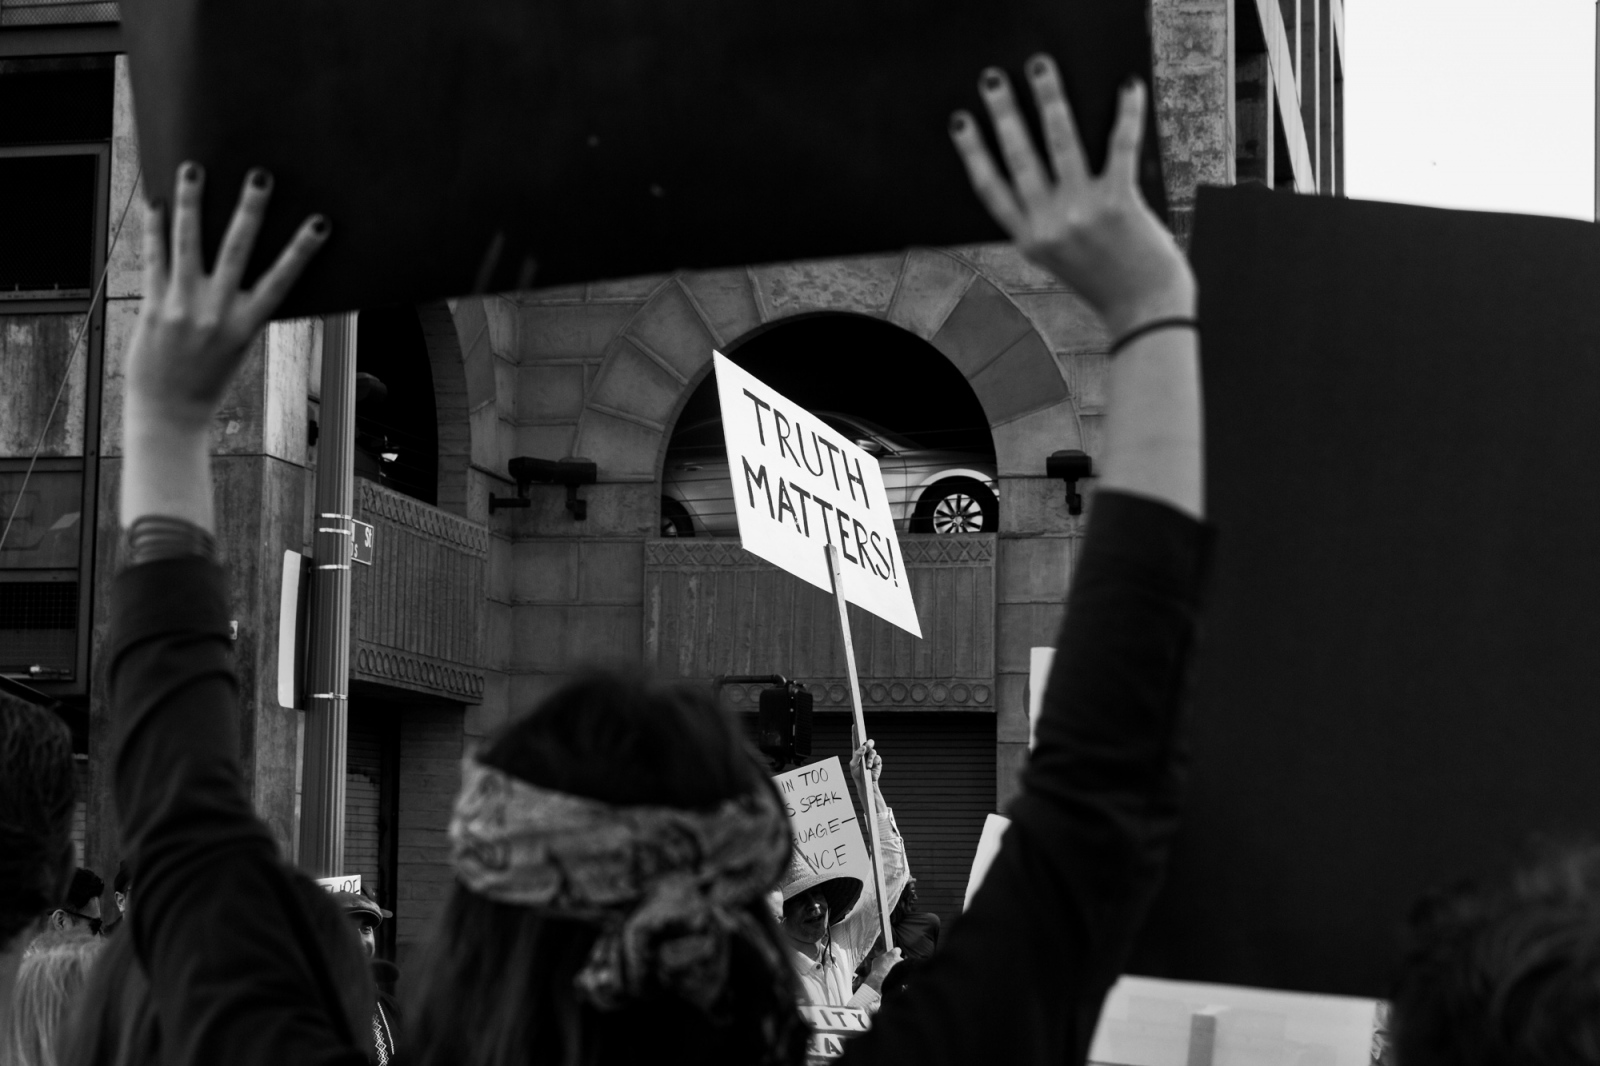 Photography image - Truth Matters. Women's March, Los Angeles, CA, 2017.